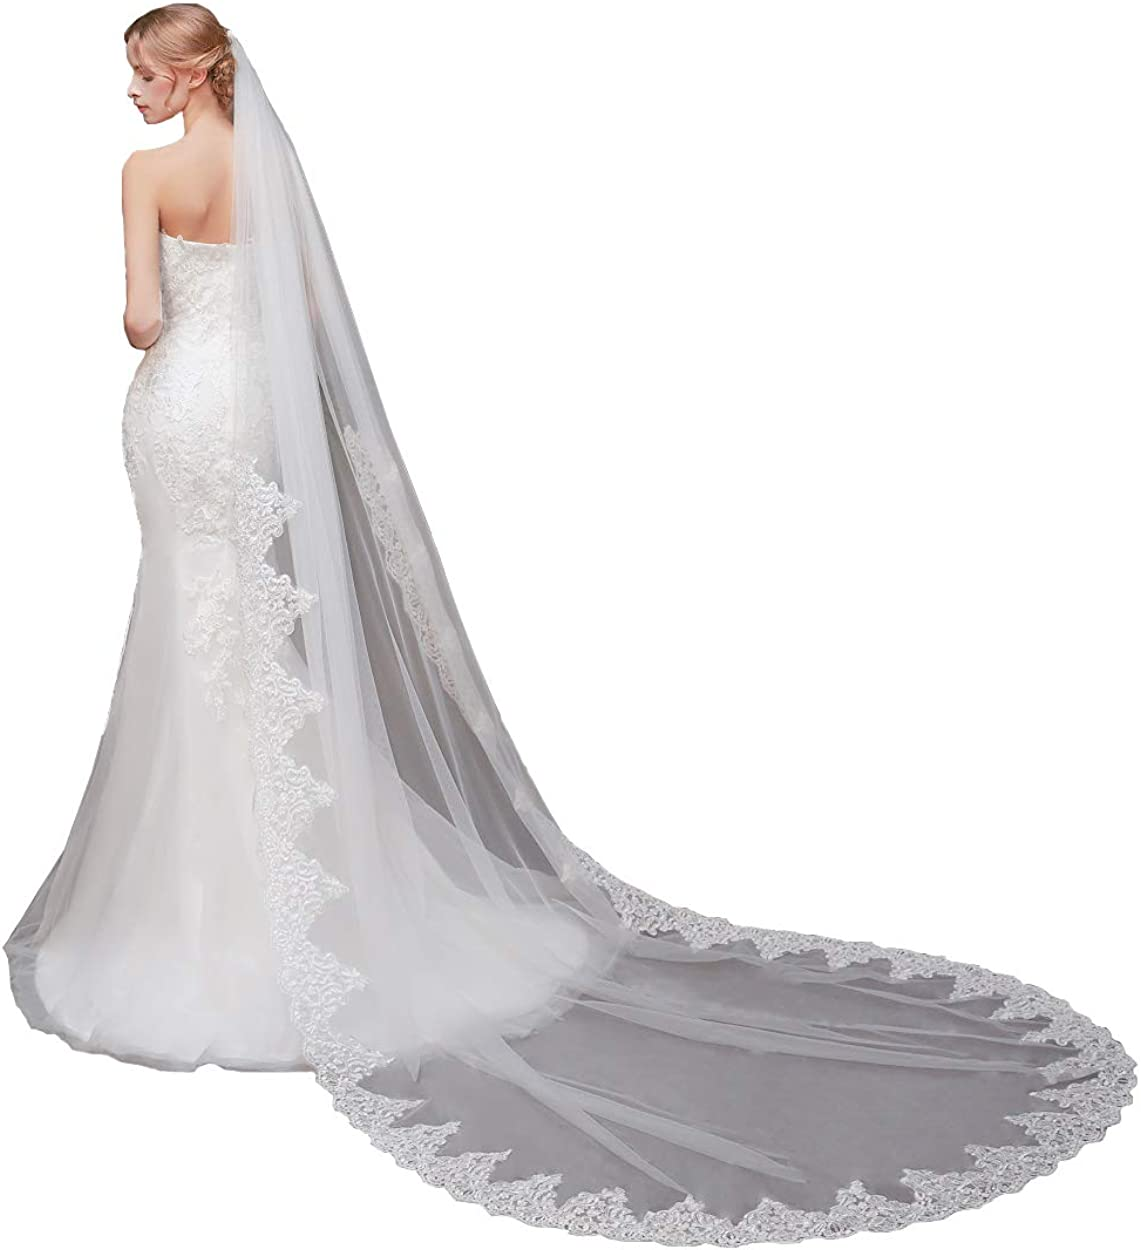 Elawbty Women Long Lace Wedding Veil 1 Tier Cathedral Length Bridal Veil With Comb